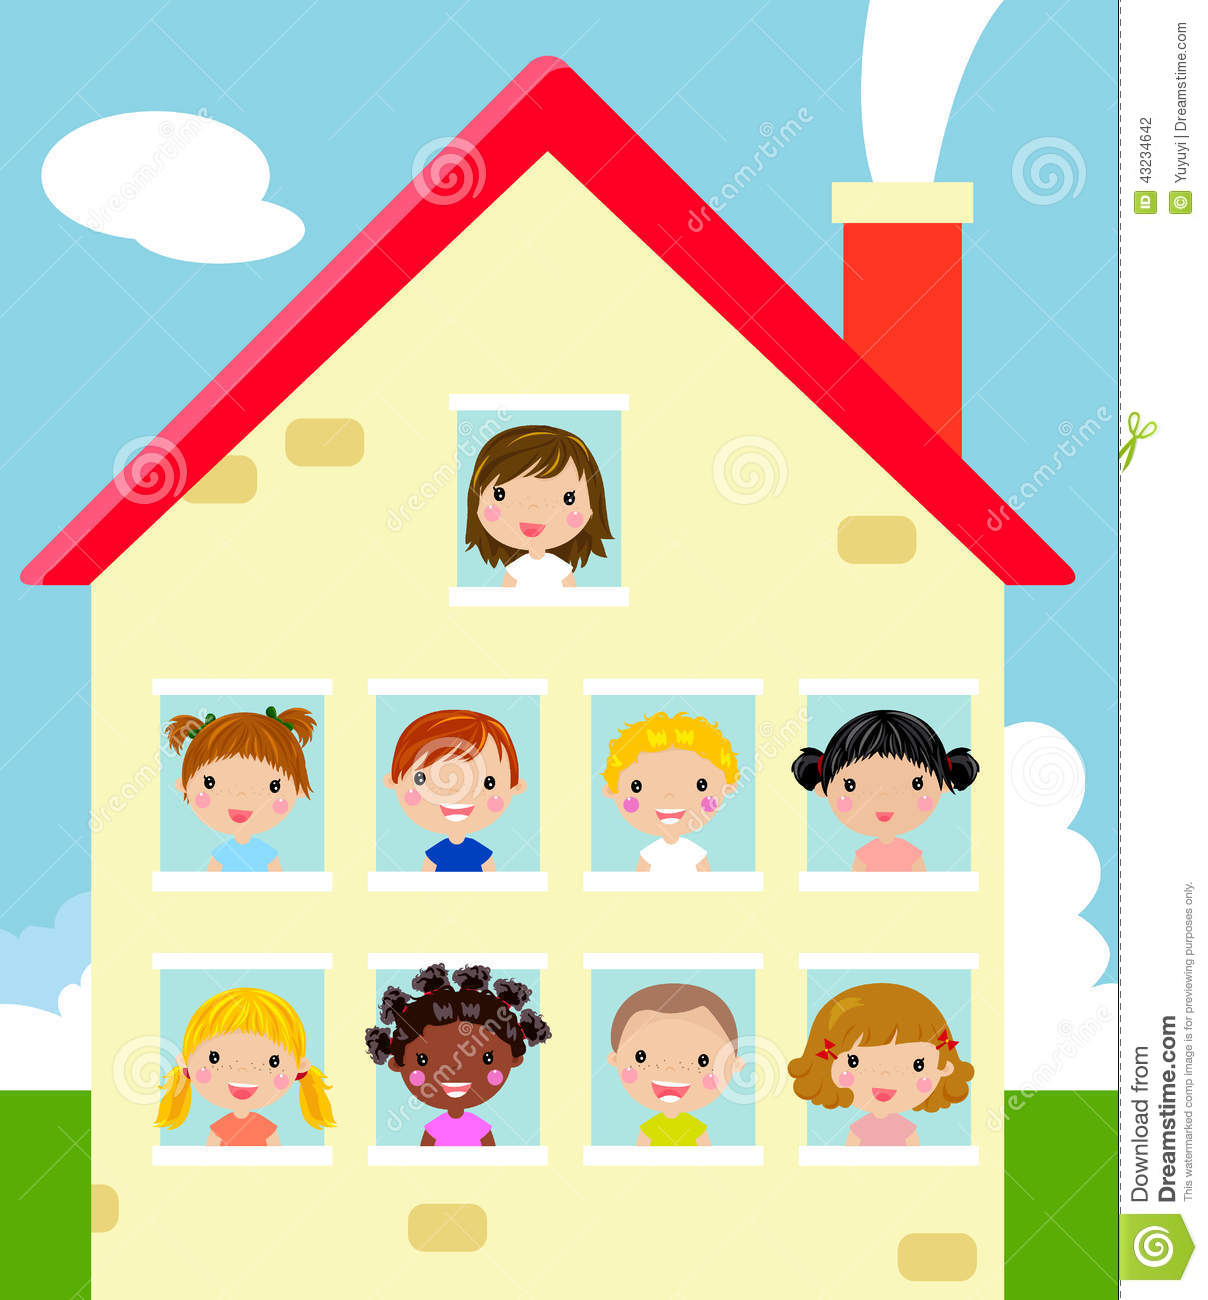 Kids and house stock vector. Image of park, home, building ...